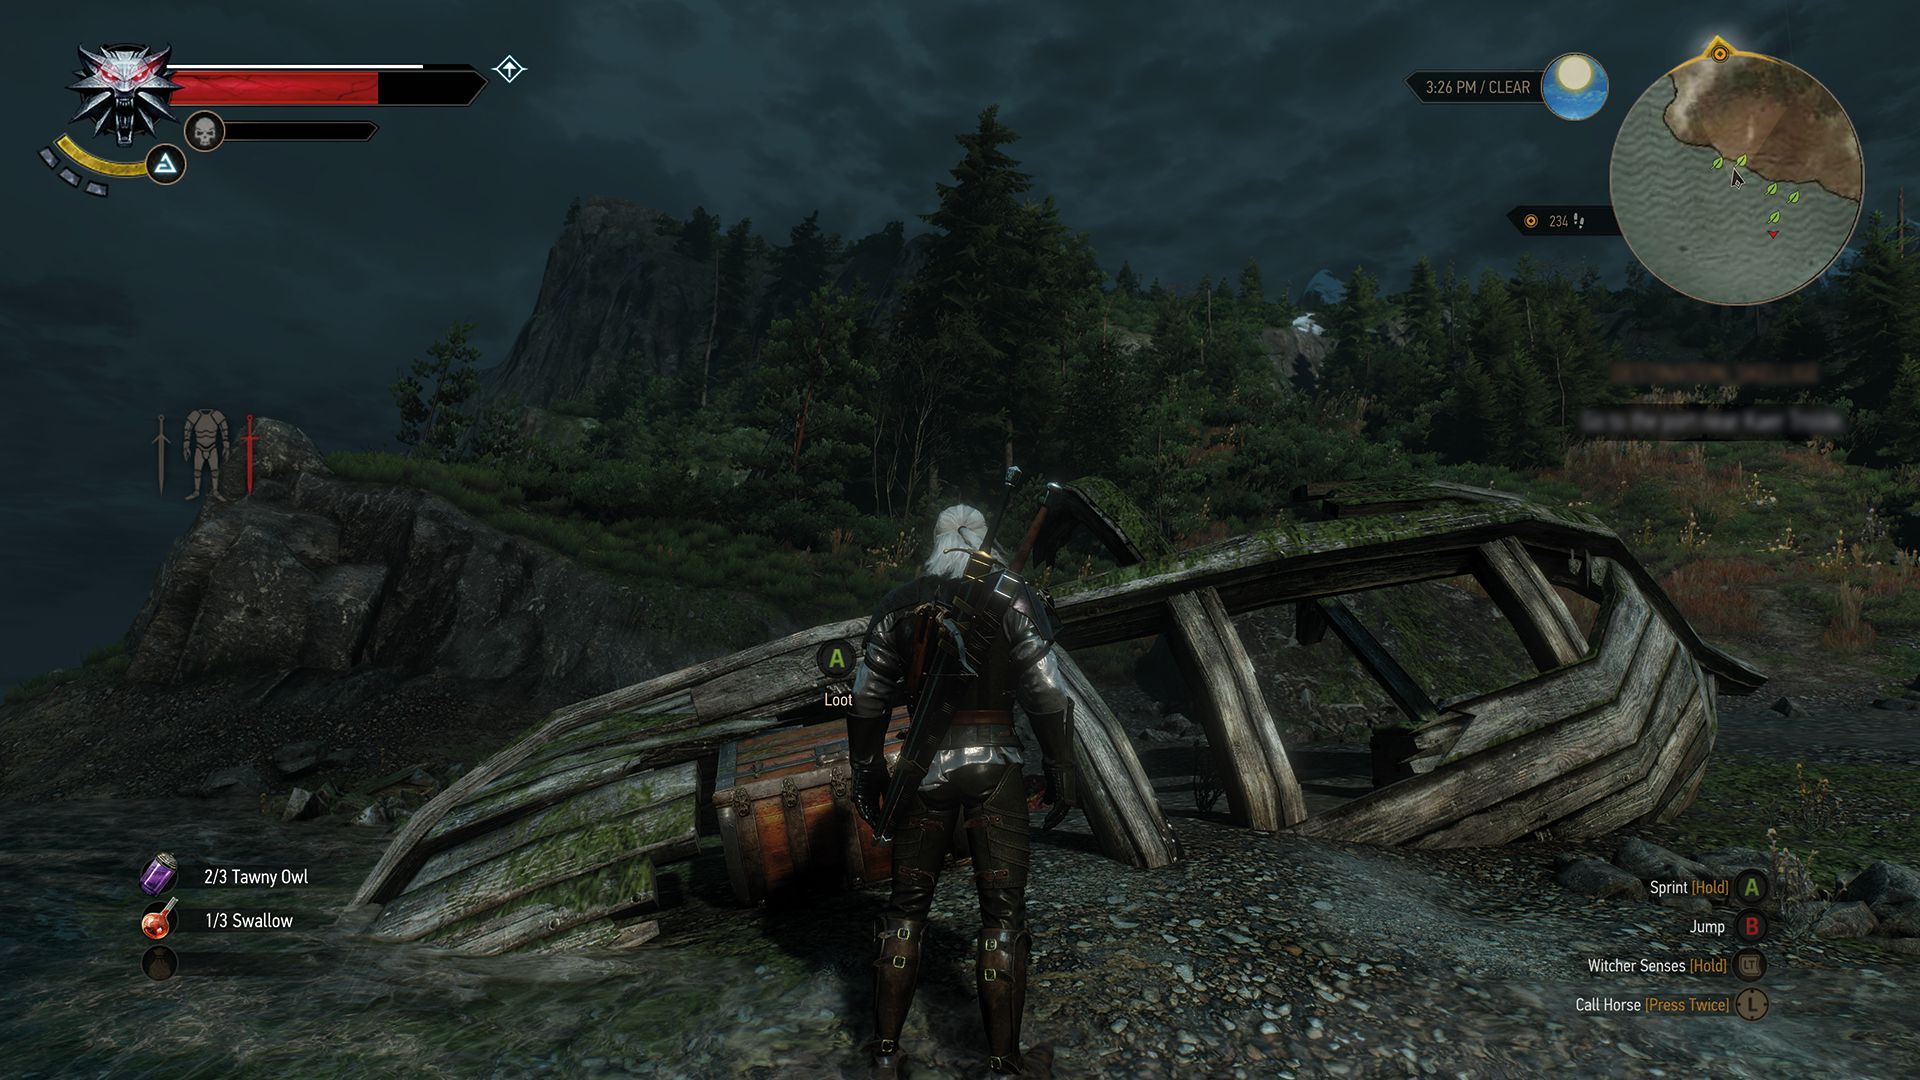 the_witcher_3_wild_hunt_on_the_one_hand_i_mourn_those_who_died_in_this_tragic_wreck_on_the_other_yay_loot_1430900911